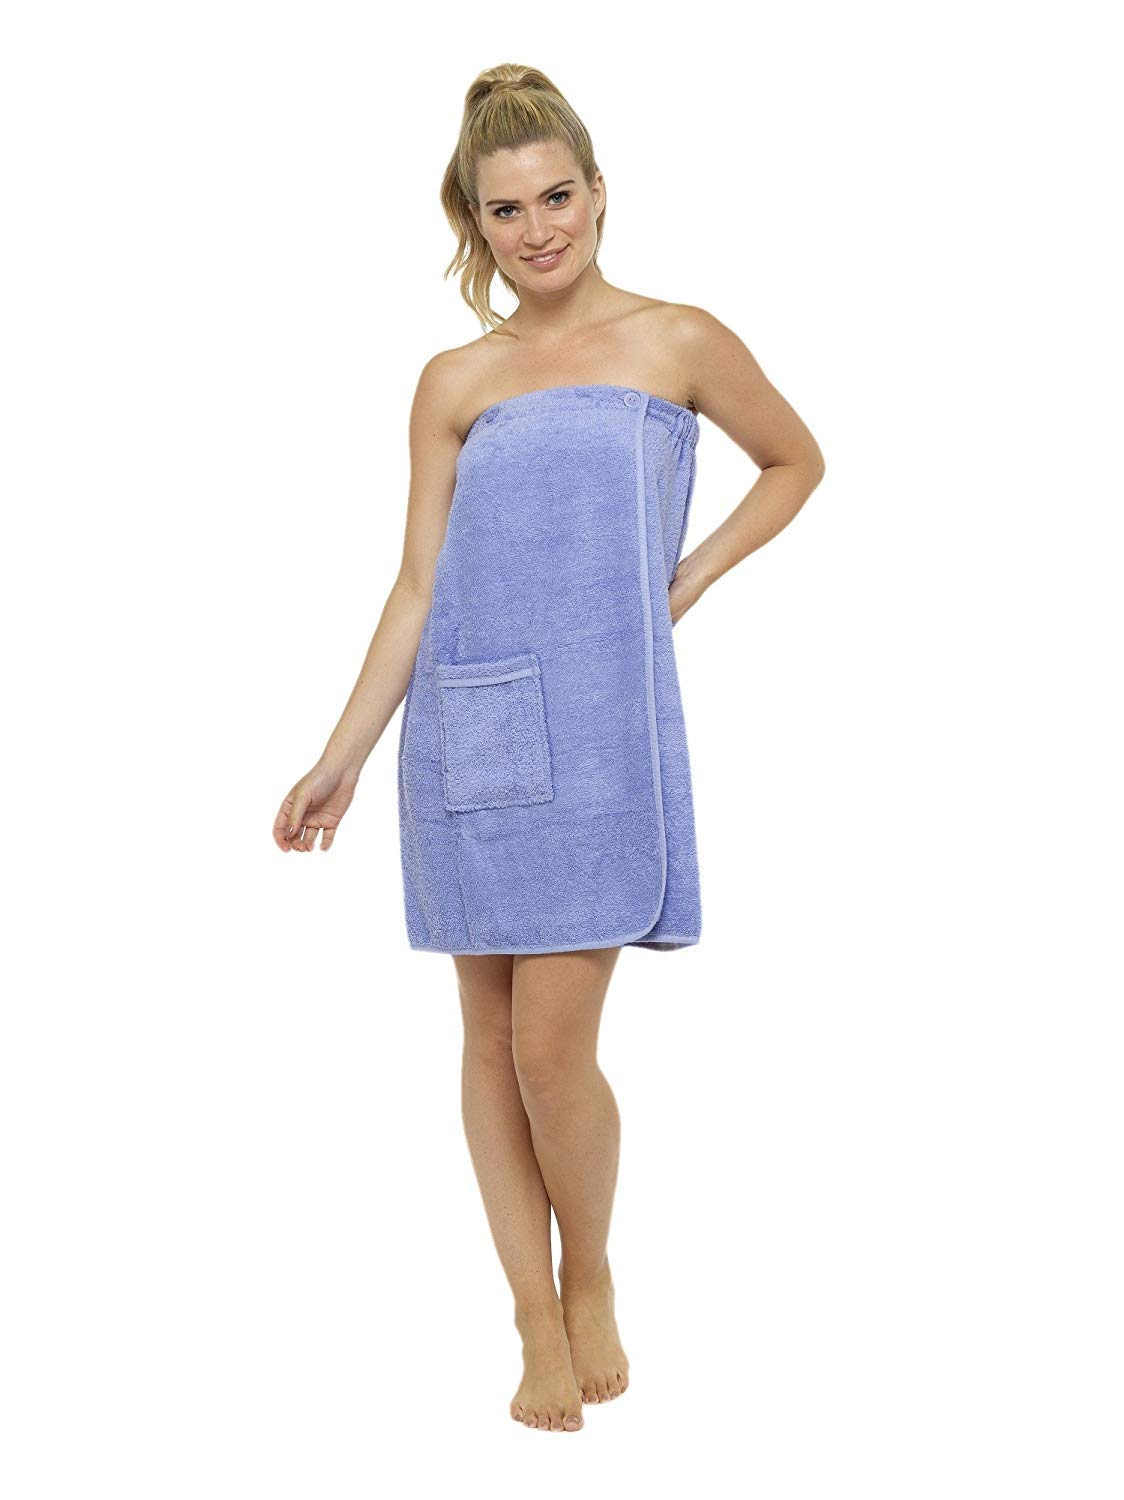 2ef0f02eaf Ladies Towel Wrap 100% Cotton Highly Absorbent Terry Soft Sarong Towel  Shower Spa Sauna Beach Gym Towelling Robe Cover-Up (LIlac, L/XL):  Amazon.co.uk: ...